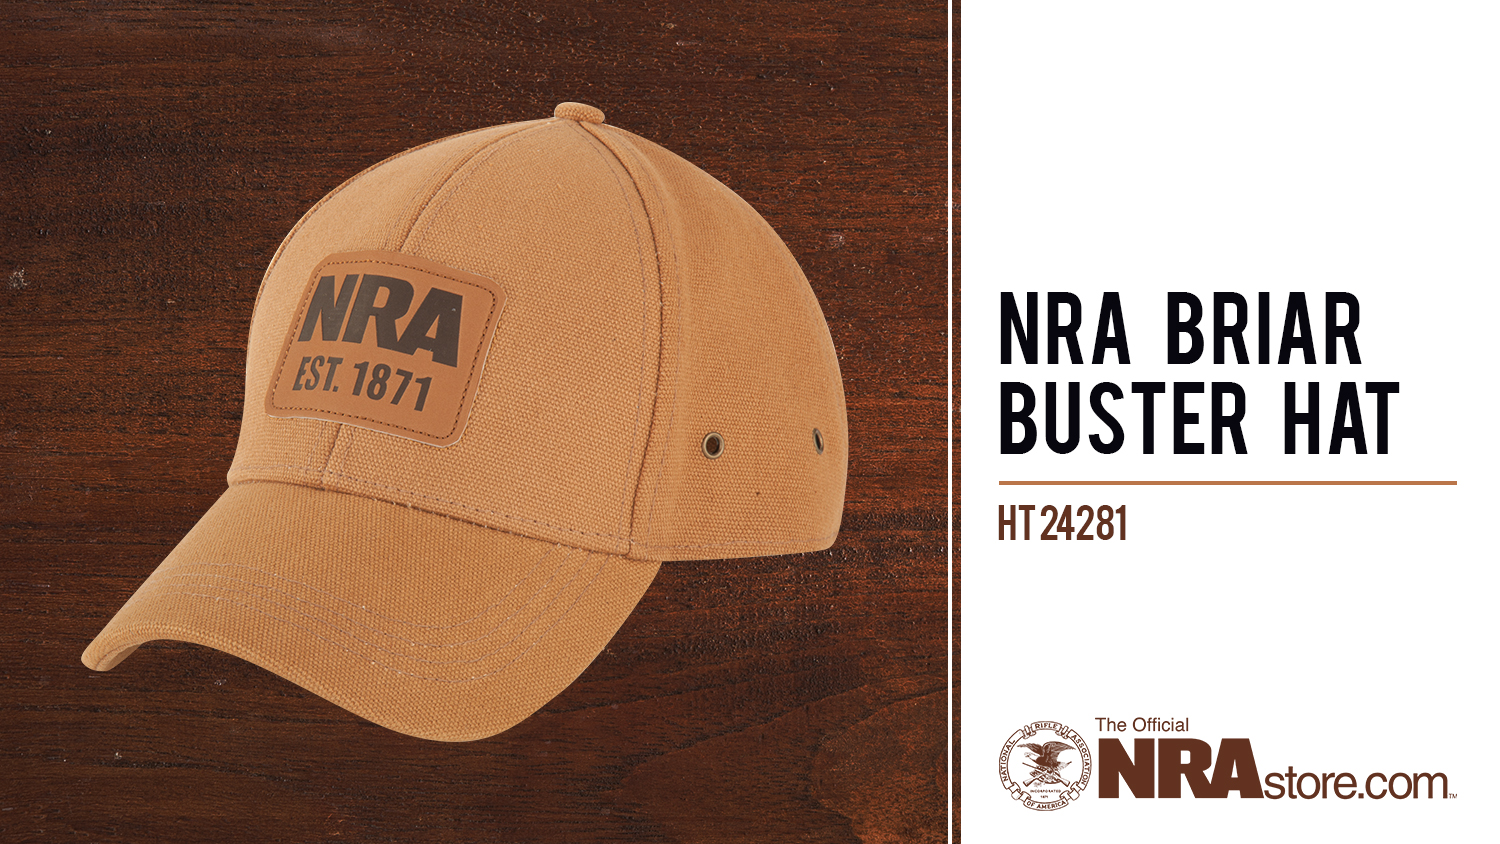 NRAstore Product Highlight: NRA Briar Buster Hat